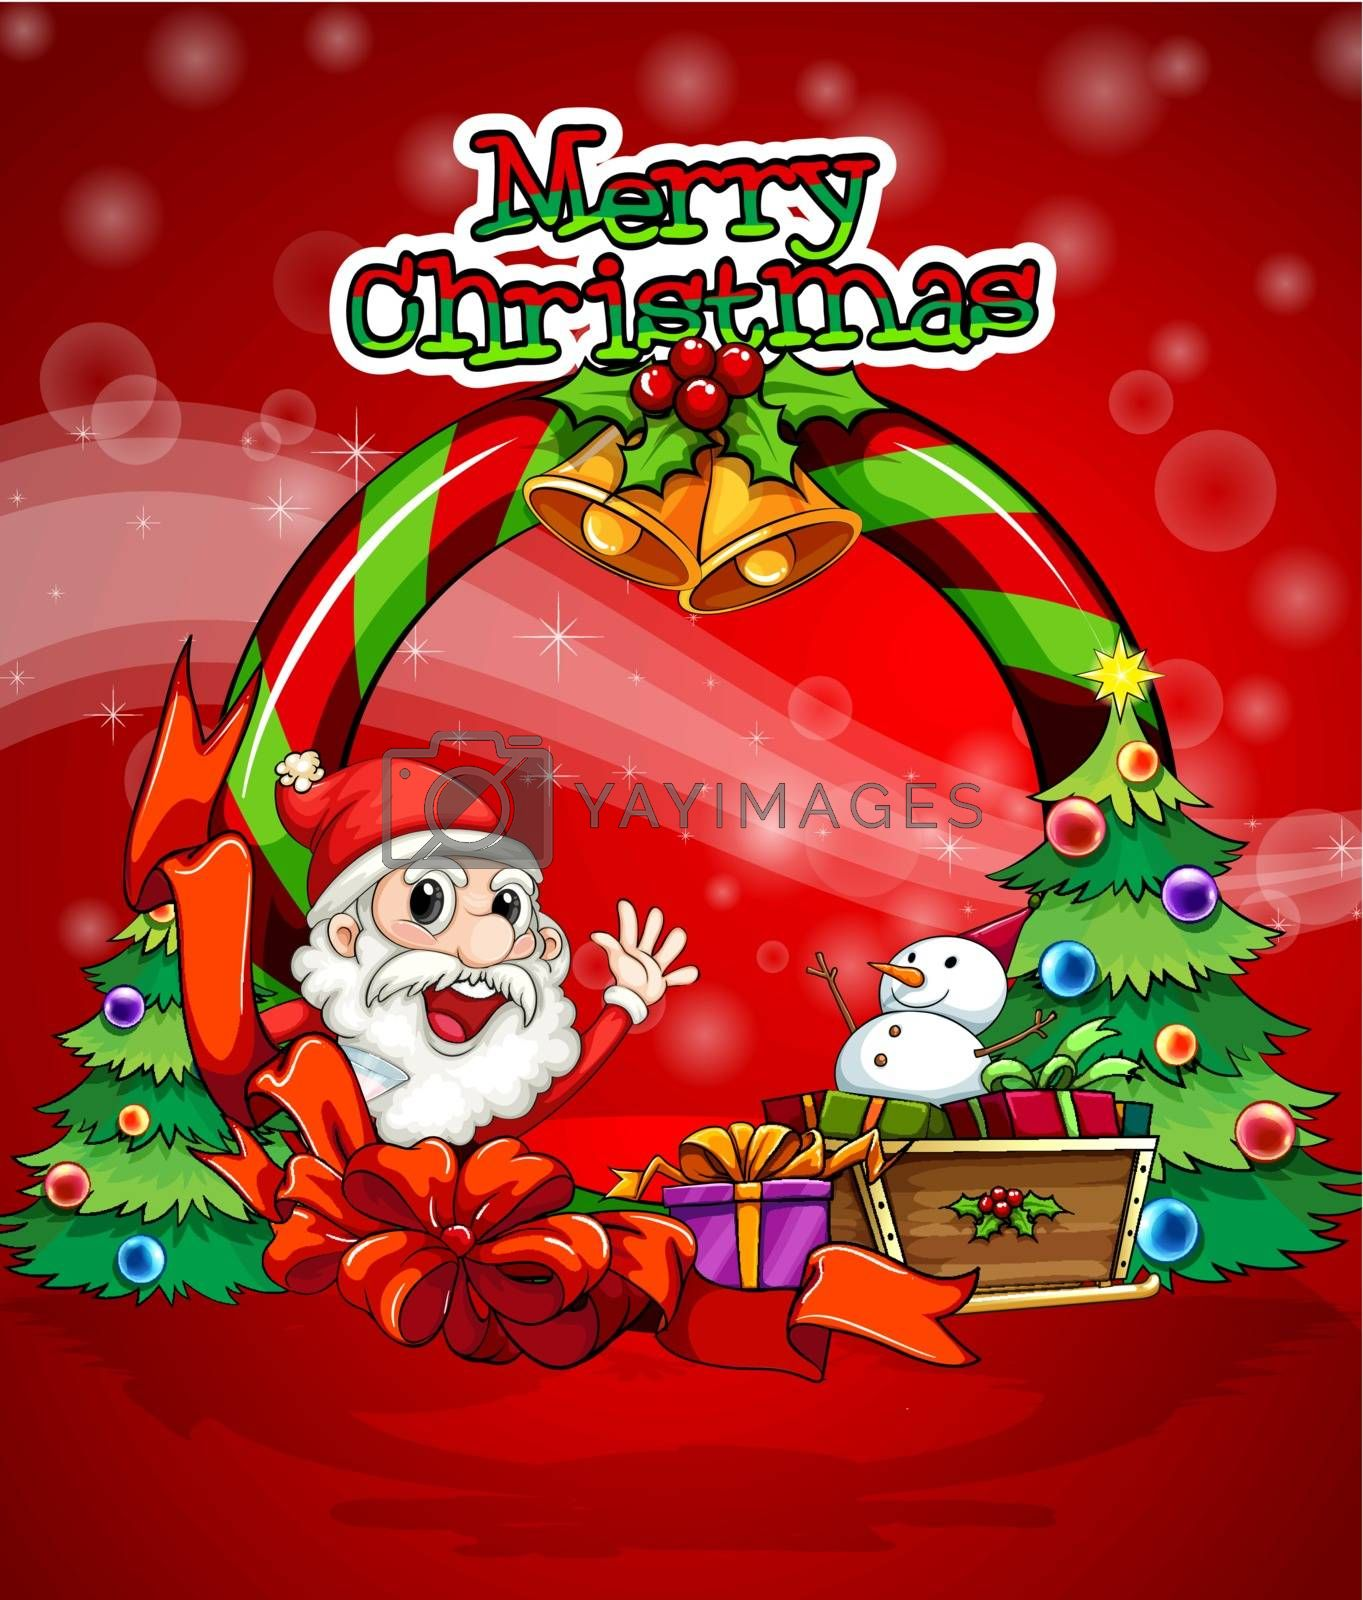 Illustration of a colorful christmas template with Santa Claus